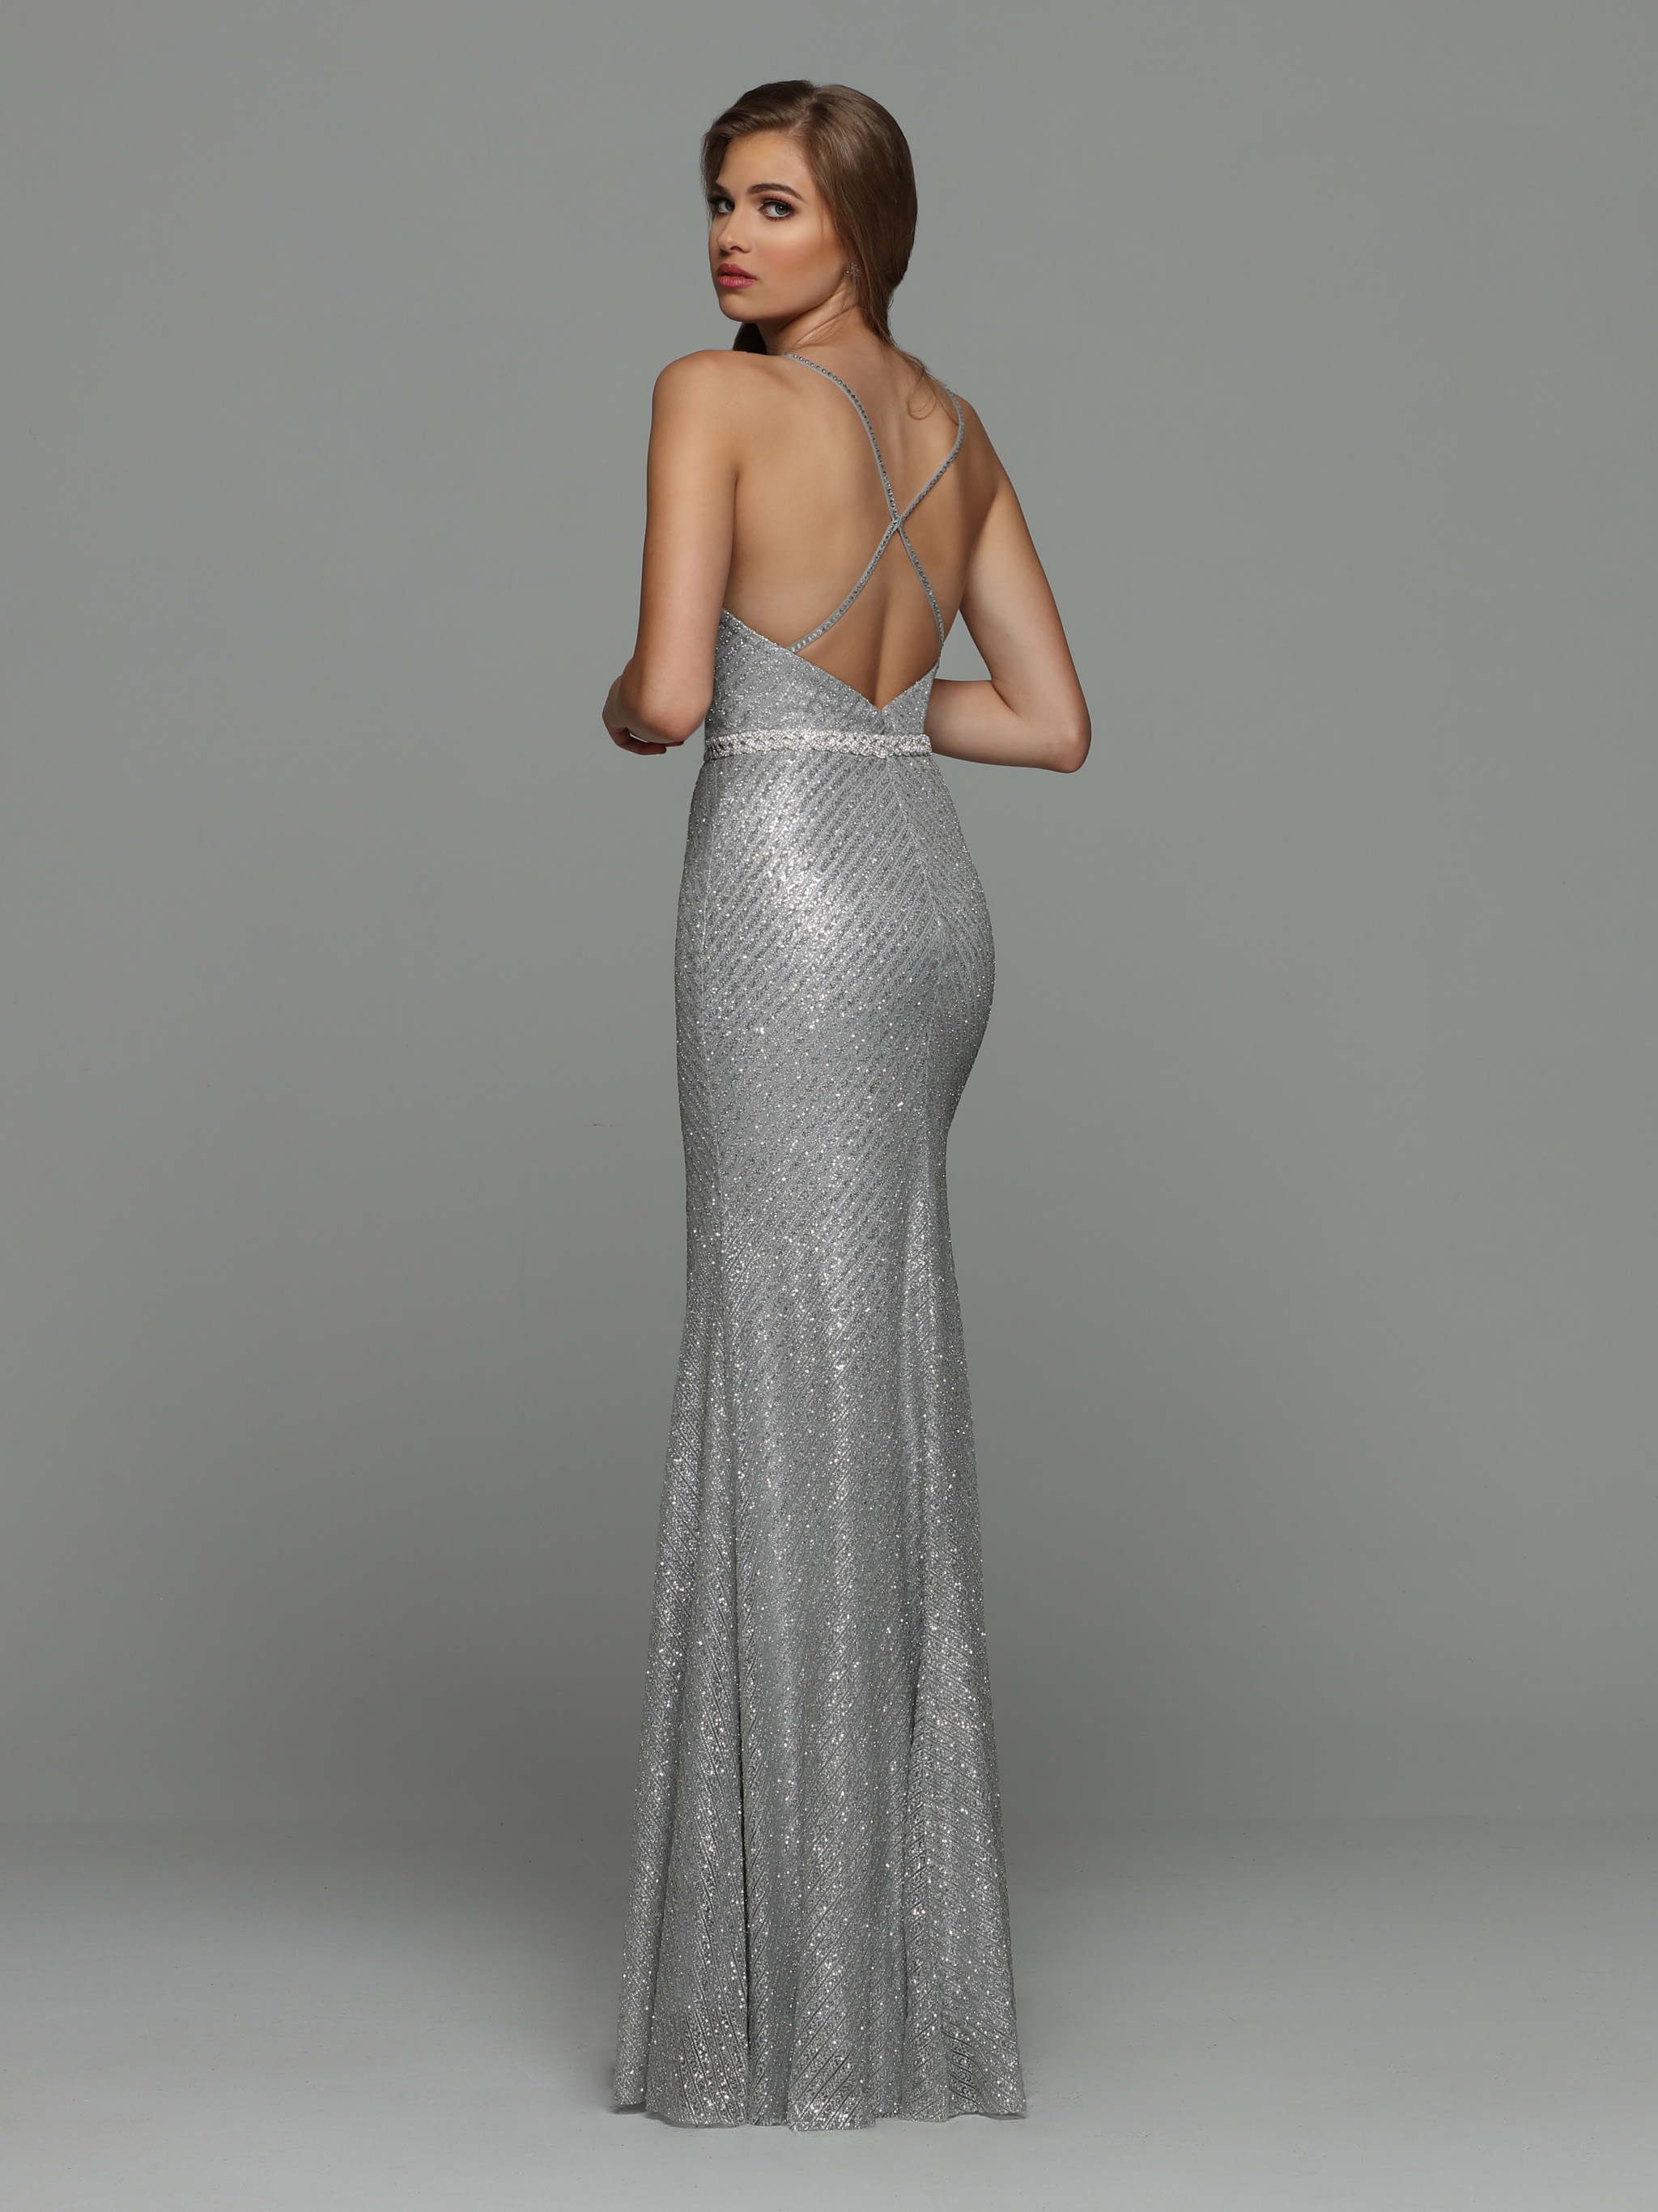 Back view of Style : 71920